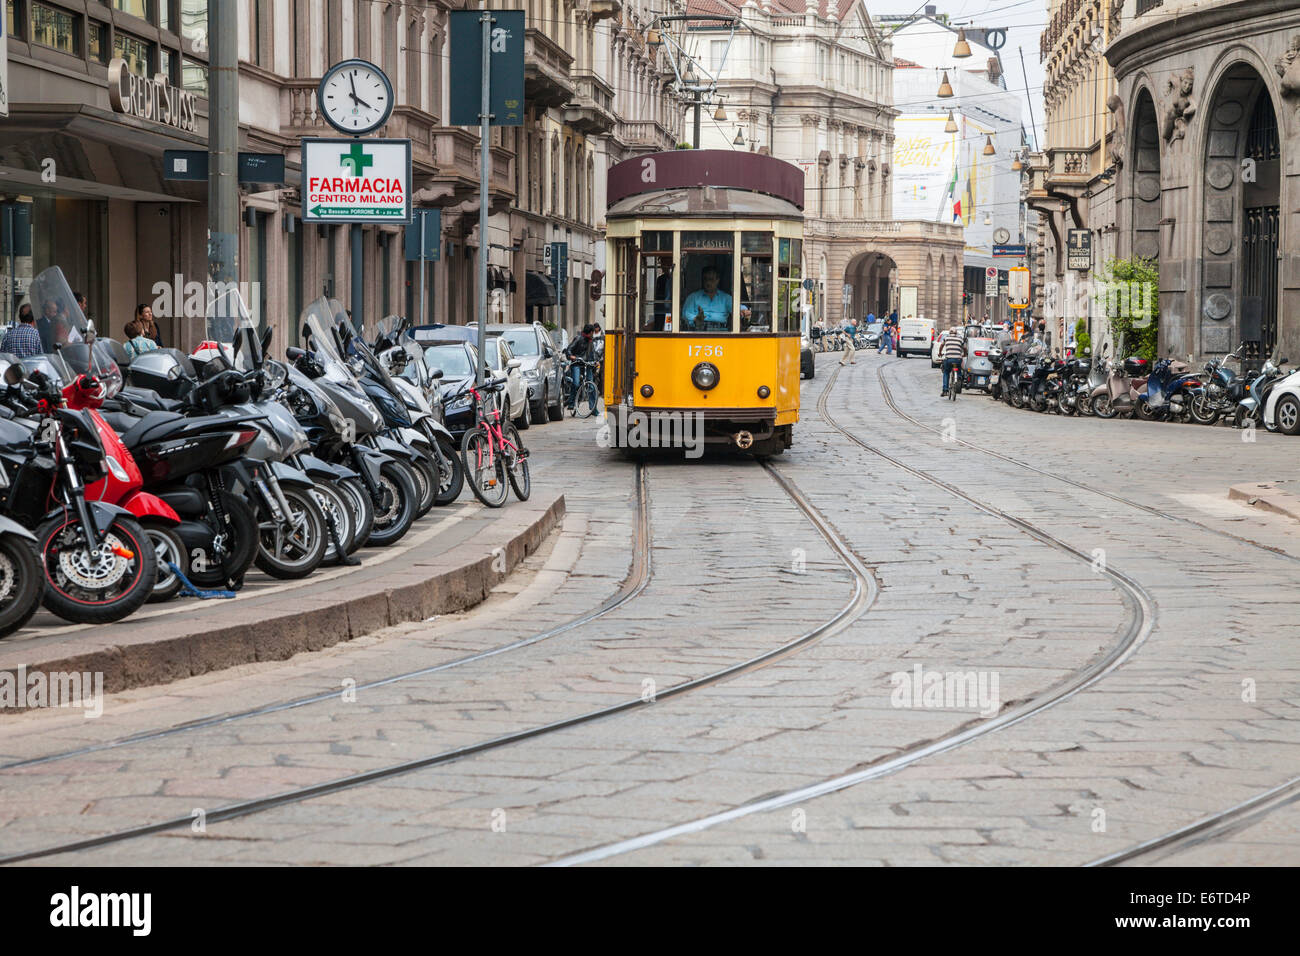 Orange tram on the streets of Milan, Italy - Stock Image